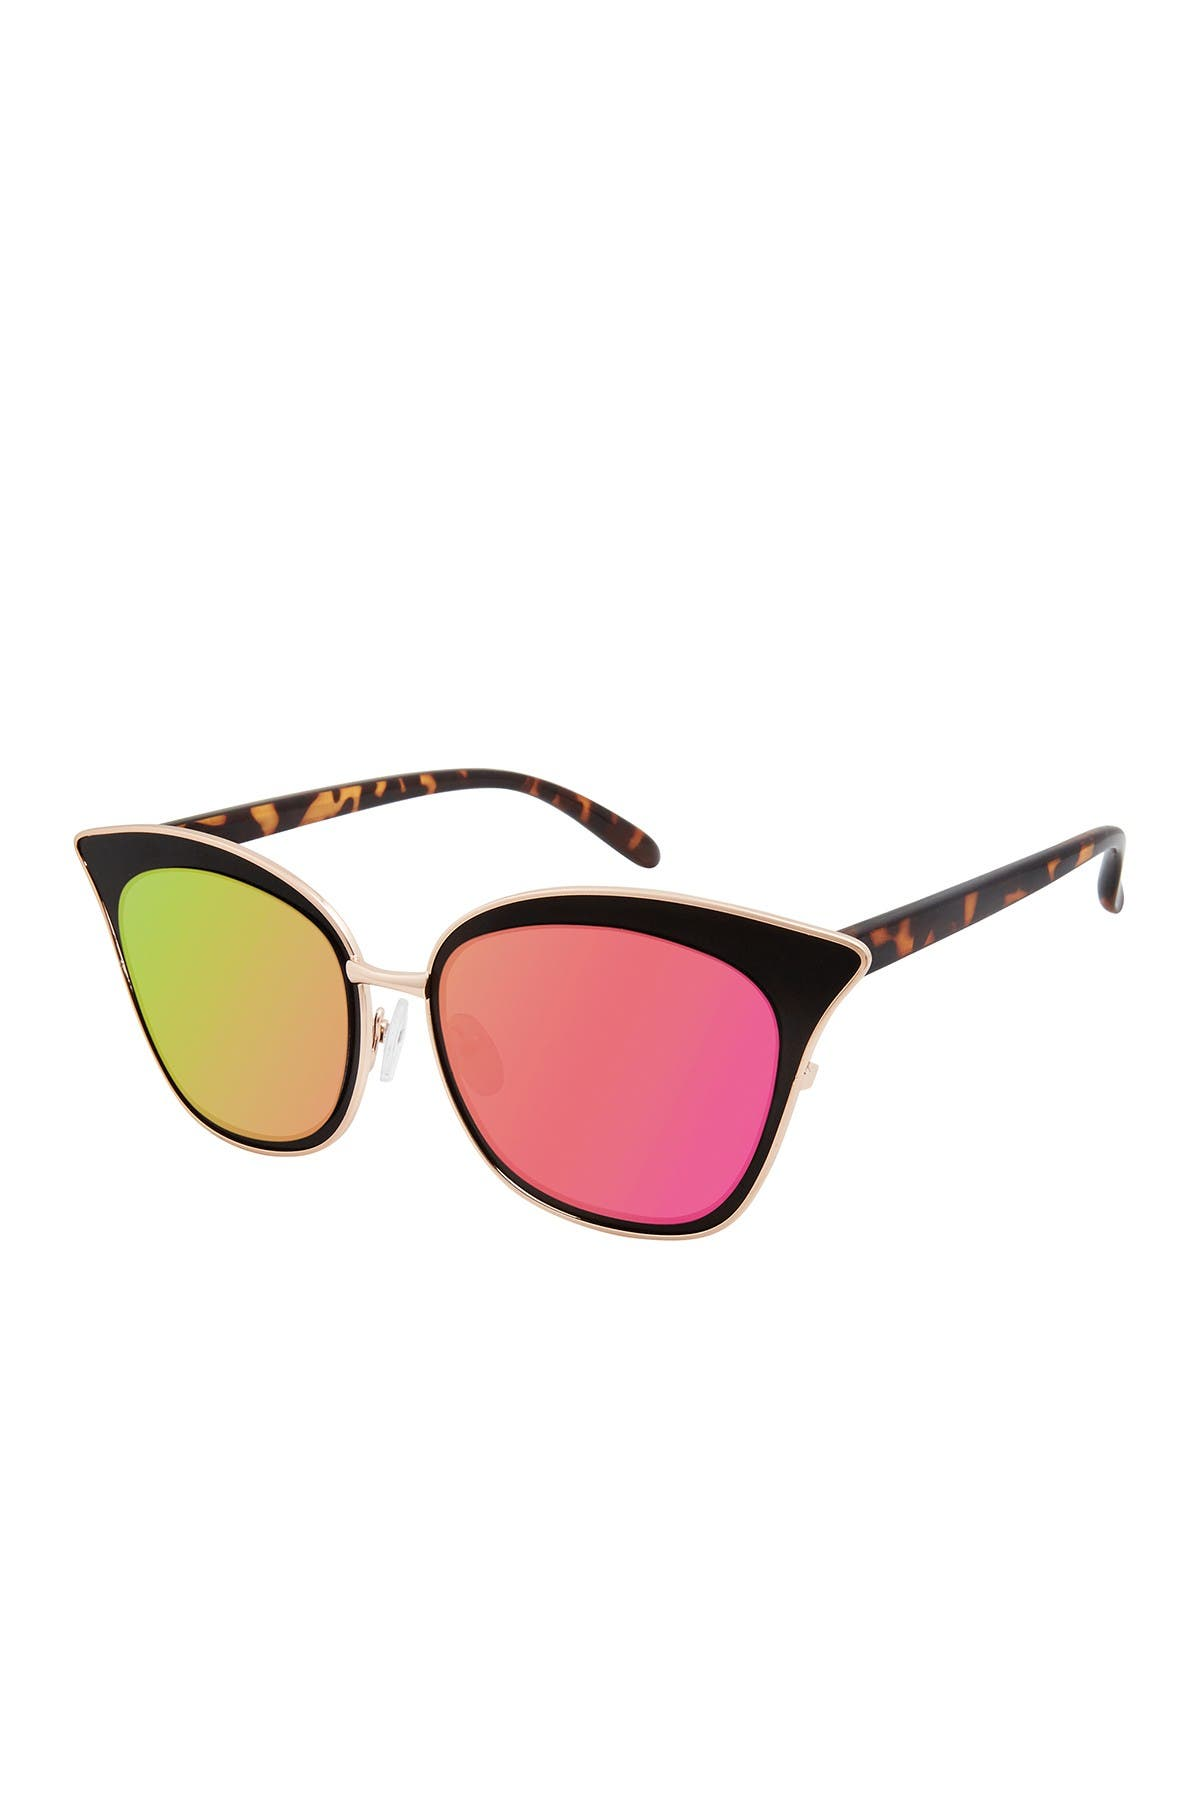 Image of True Religion 54mm Cat Eye Sunglasses